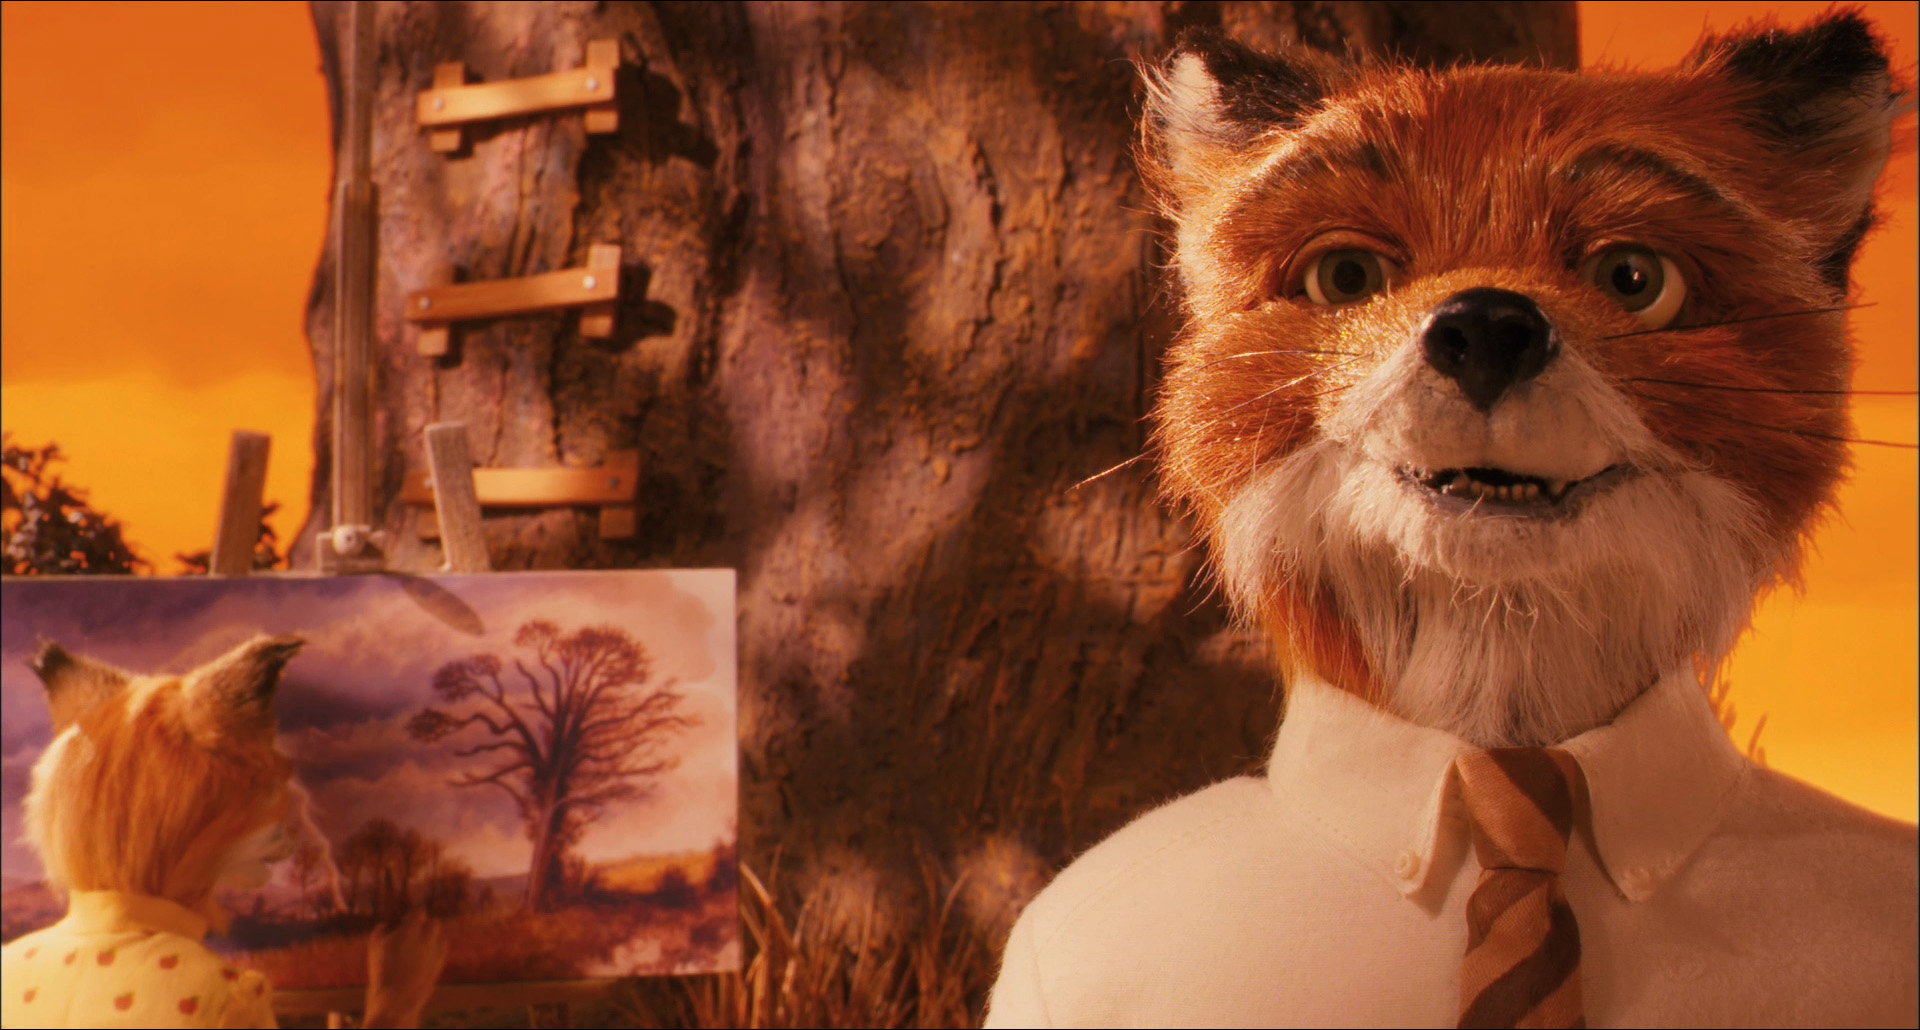 http://drnorth.files.wordpress.com/2009/10/fantastic_mr_fox_t_sample.jpg